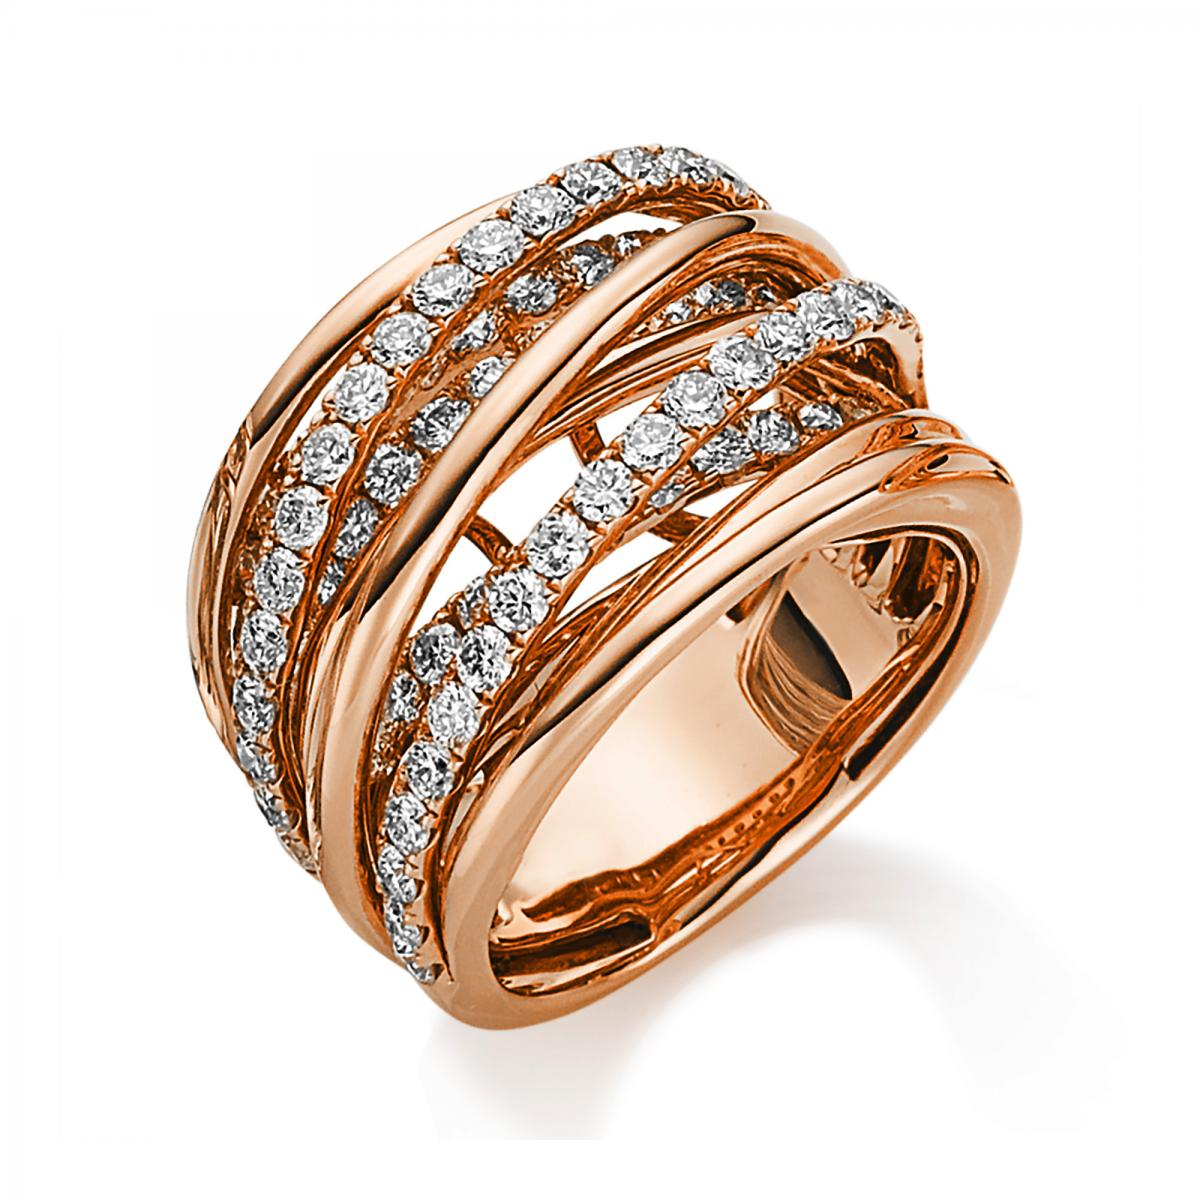 Ring red gold 18 ct with 79 brilliants ca. 1,90 ct, size 54